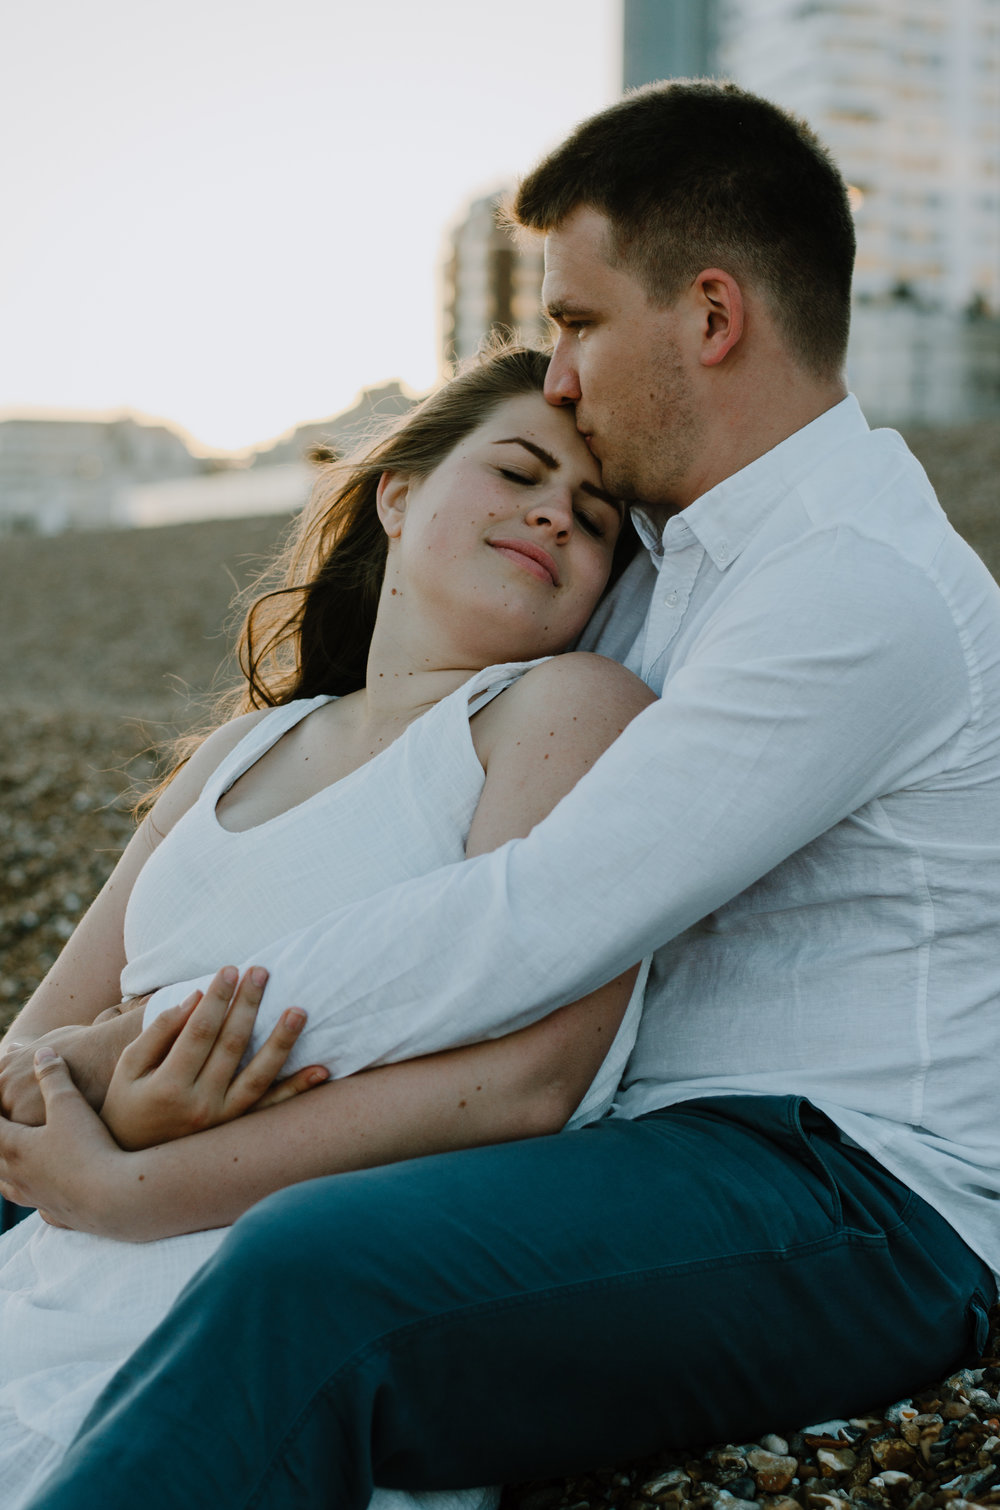 Ieva & Julius - Brighton Beach - Couple Session - Aiste Saulyte Photography-65.jpg